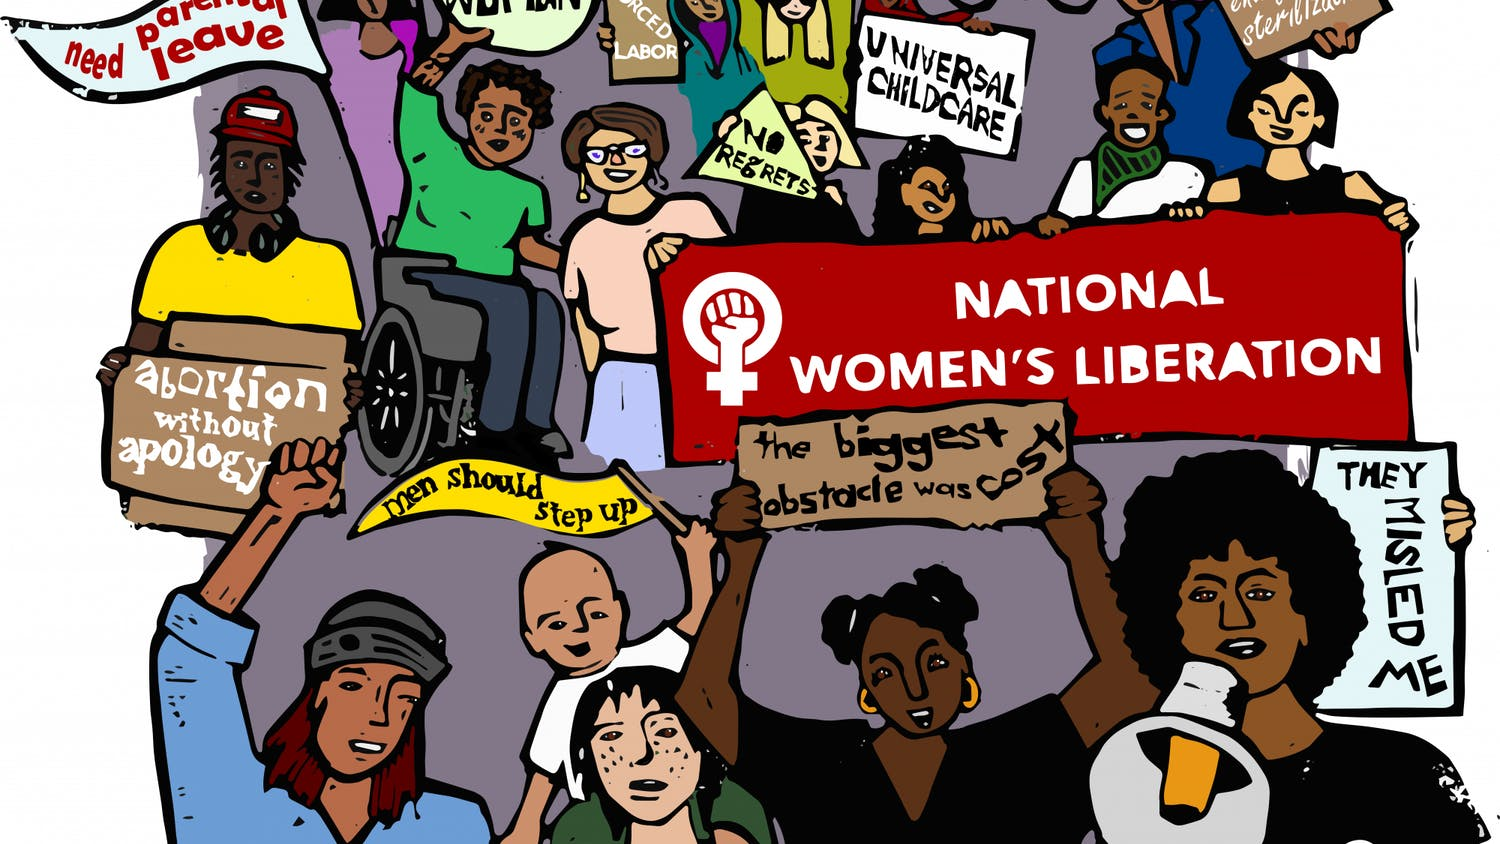 """""""Gainesville has a really proud, awesome history as the first place to have an organized feminist group in the South,"""" NWL organizer Brooke Eliazar-Macke said."""